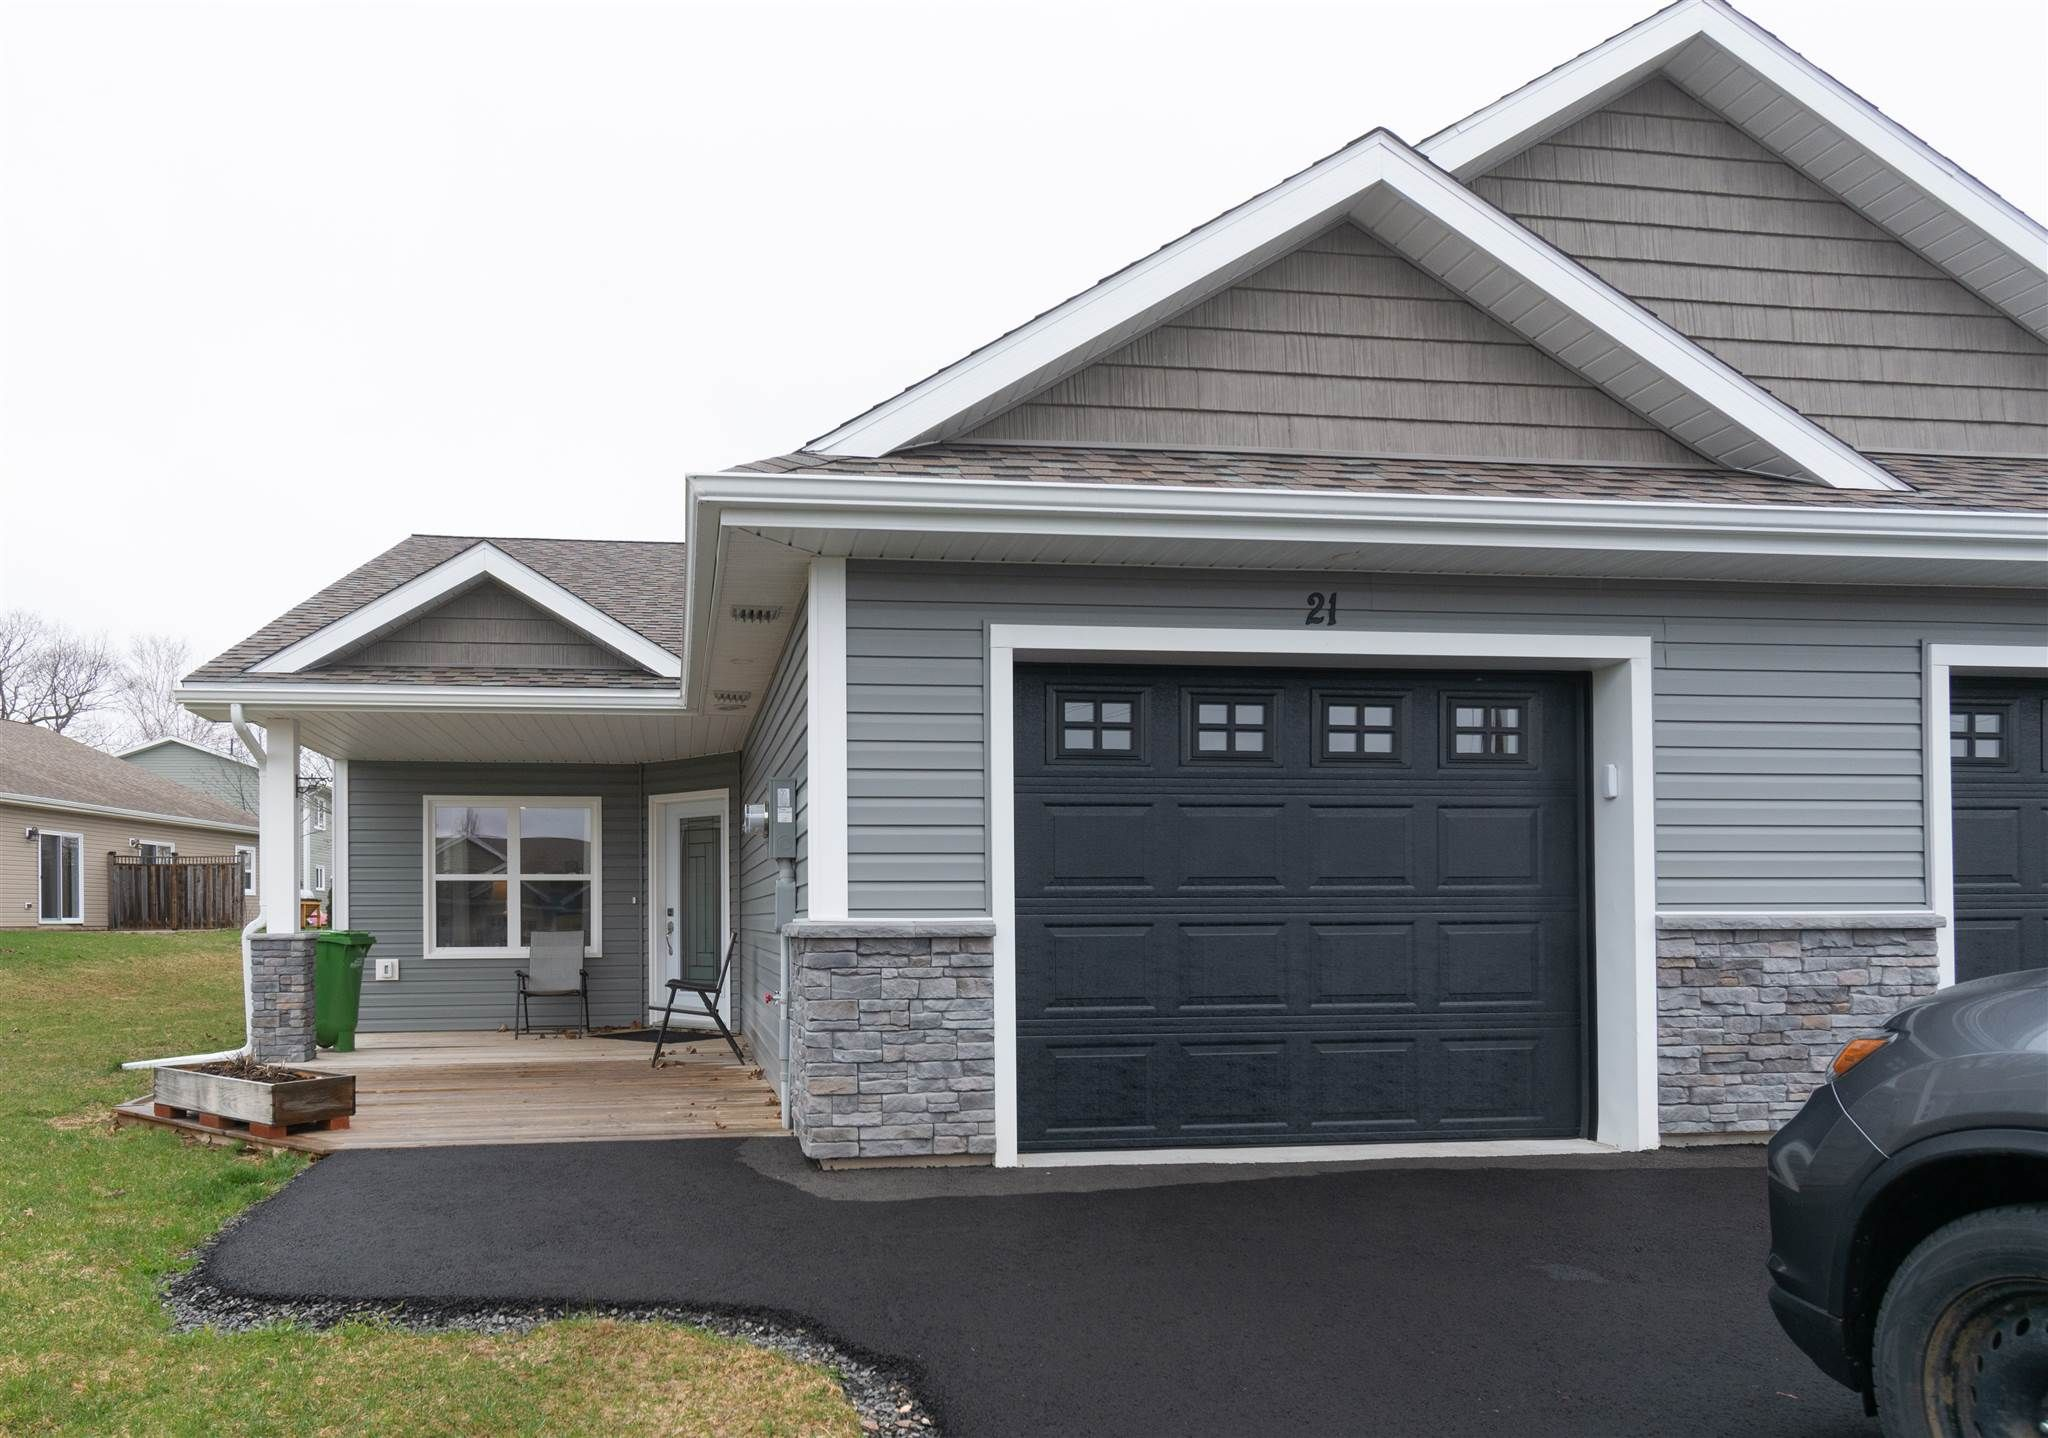 Main Photo: 21 Selena Court in Port Williams: 404-Kings County Residential for sale (Annapolis Valley)  : MLS®# 202109662